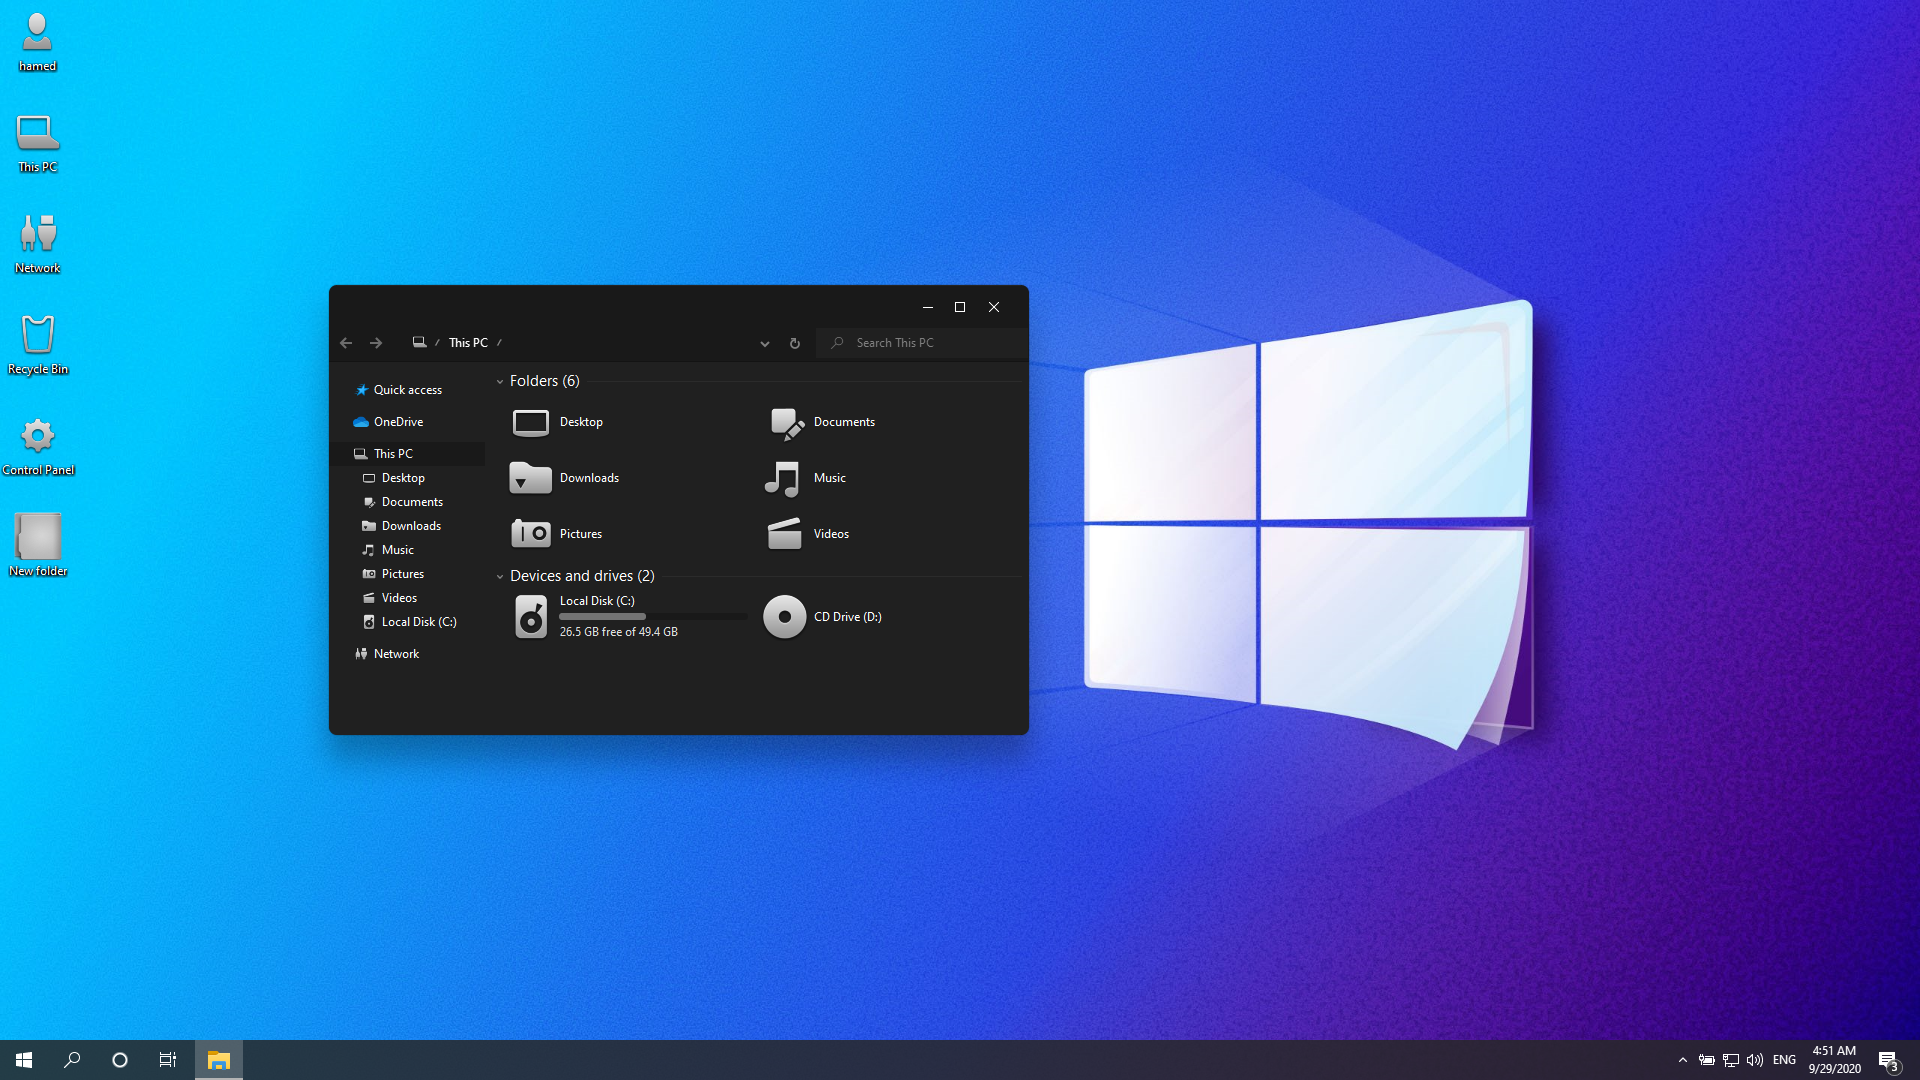 Windows 10 20h2 The beginning of the end for Control Panel